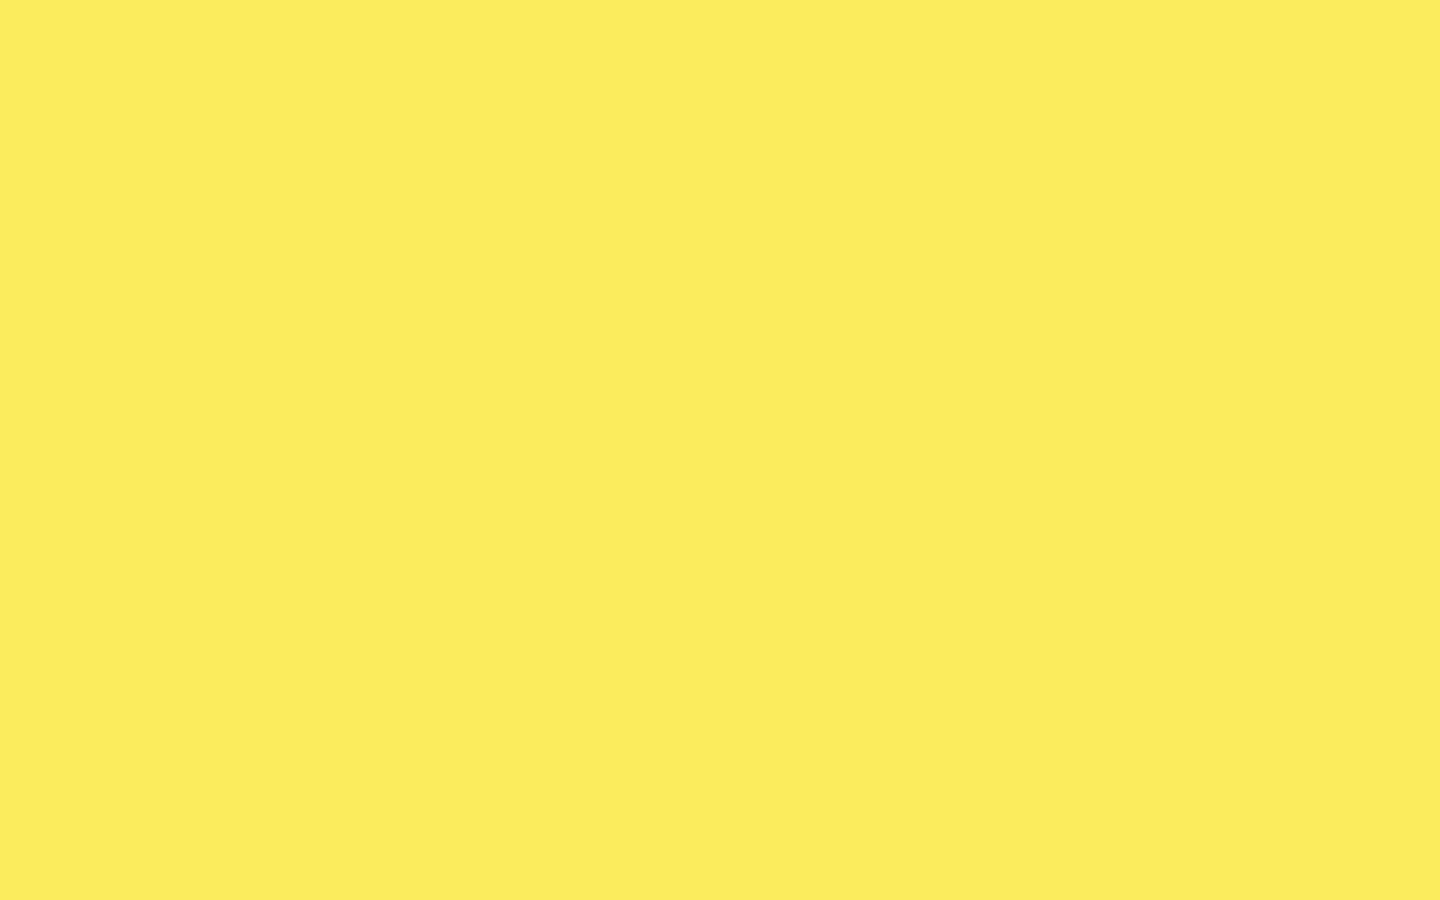 1440x900 Corn Solid Color Background